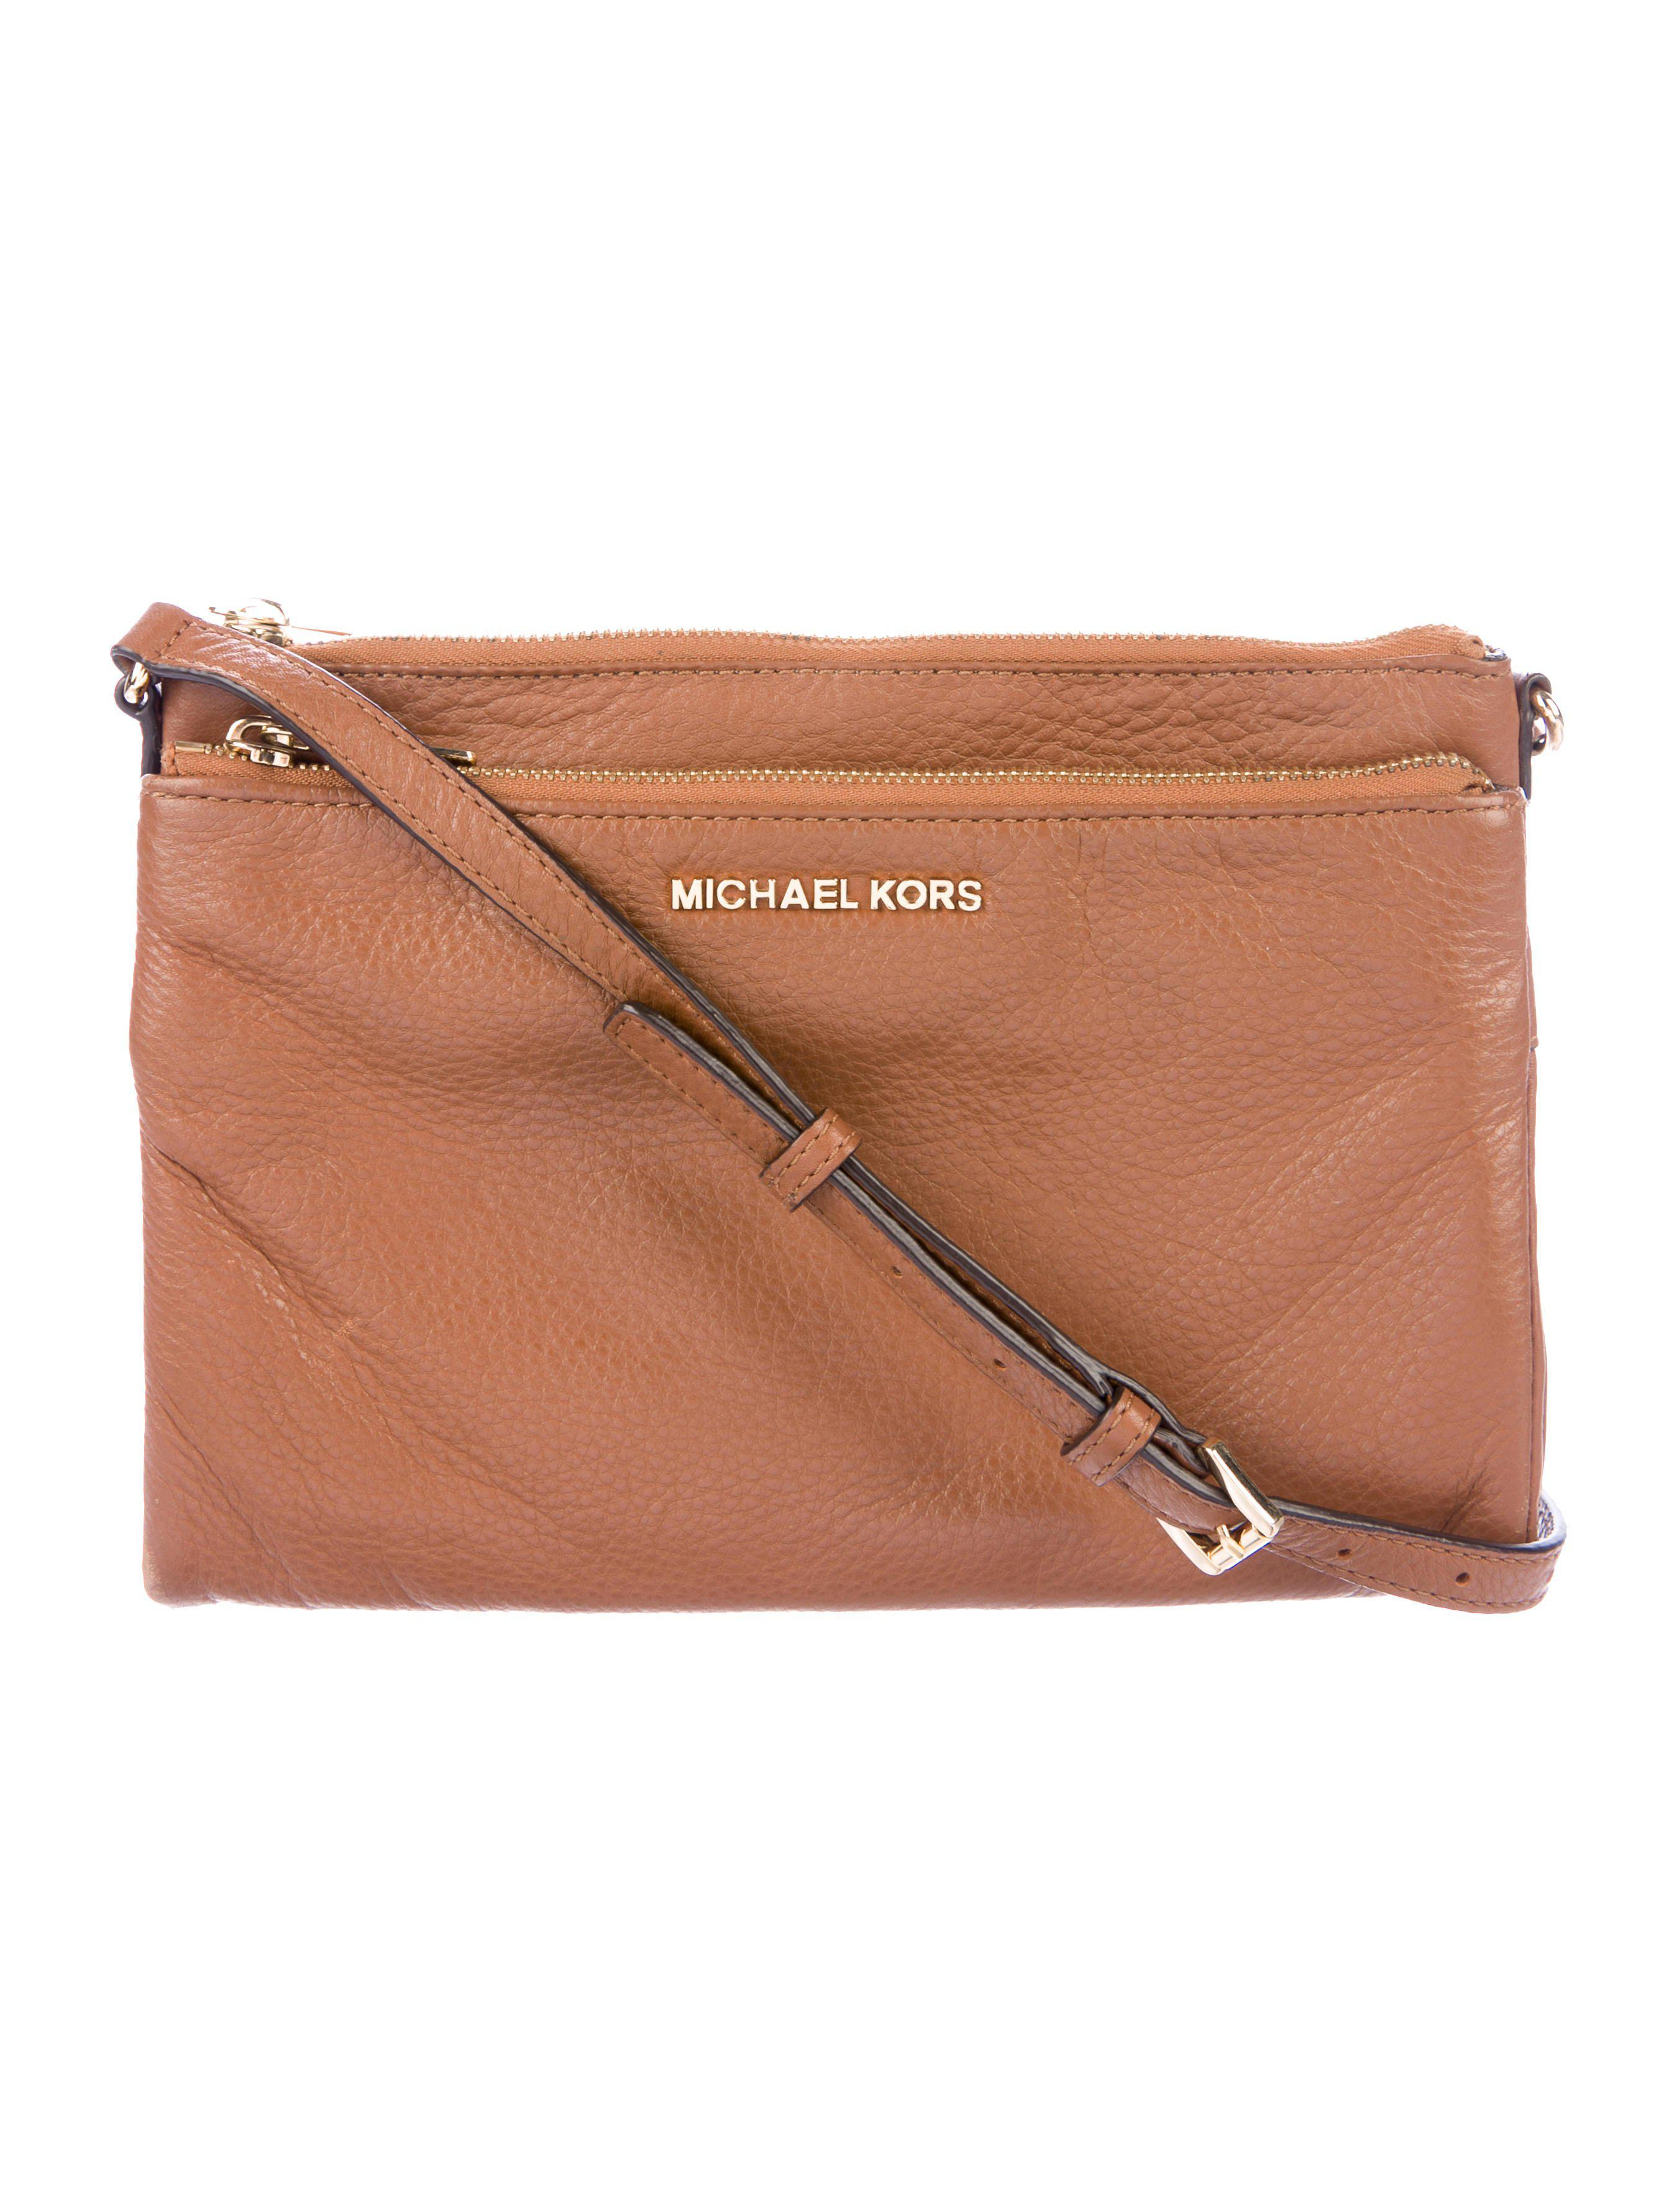 MICHAEL Michael Kors. Women s Metallic Michael Kors Grained Leather  Crossbody Bag Brown f72a4e15cbe2b